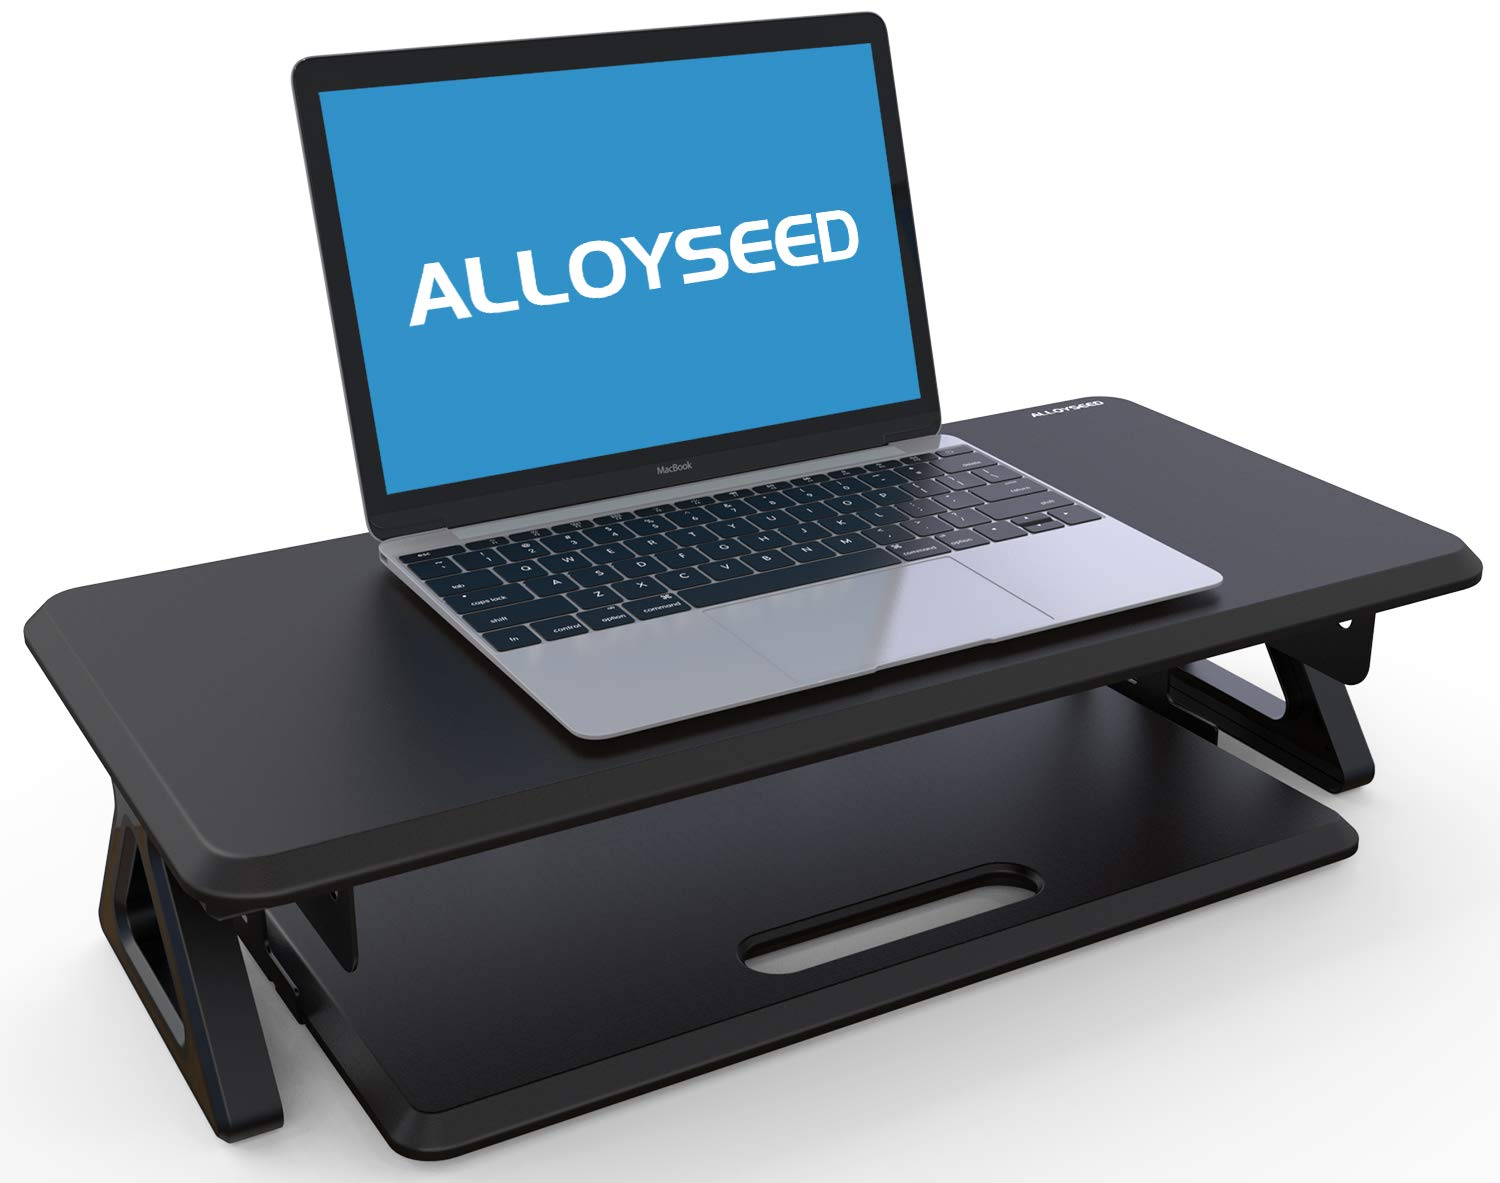 Alloyseed Monitor Stand Riser with Smooth in and Out Keyboard Tray, Laptop Computer Screen Desk Shelf for TV Printer 24.8'' x 11.8'' Desktop Organizer and Ergonomic Benefit